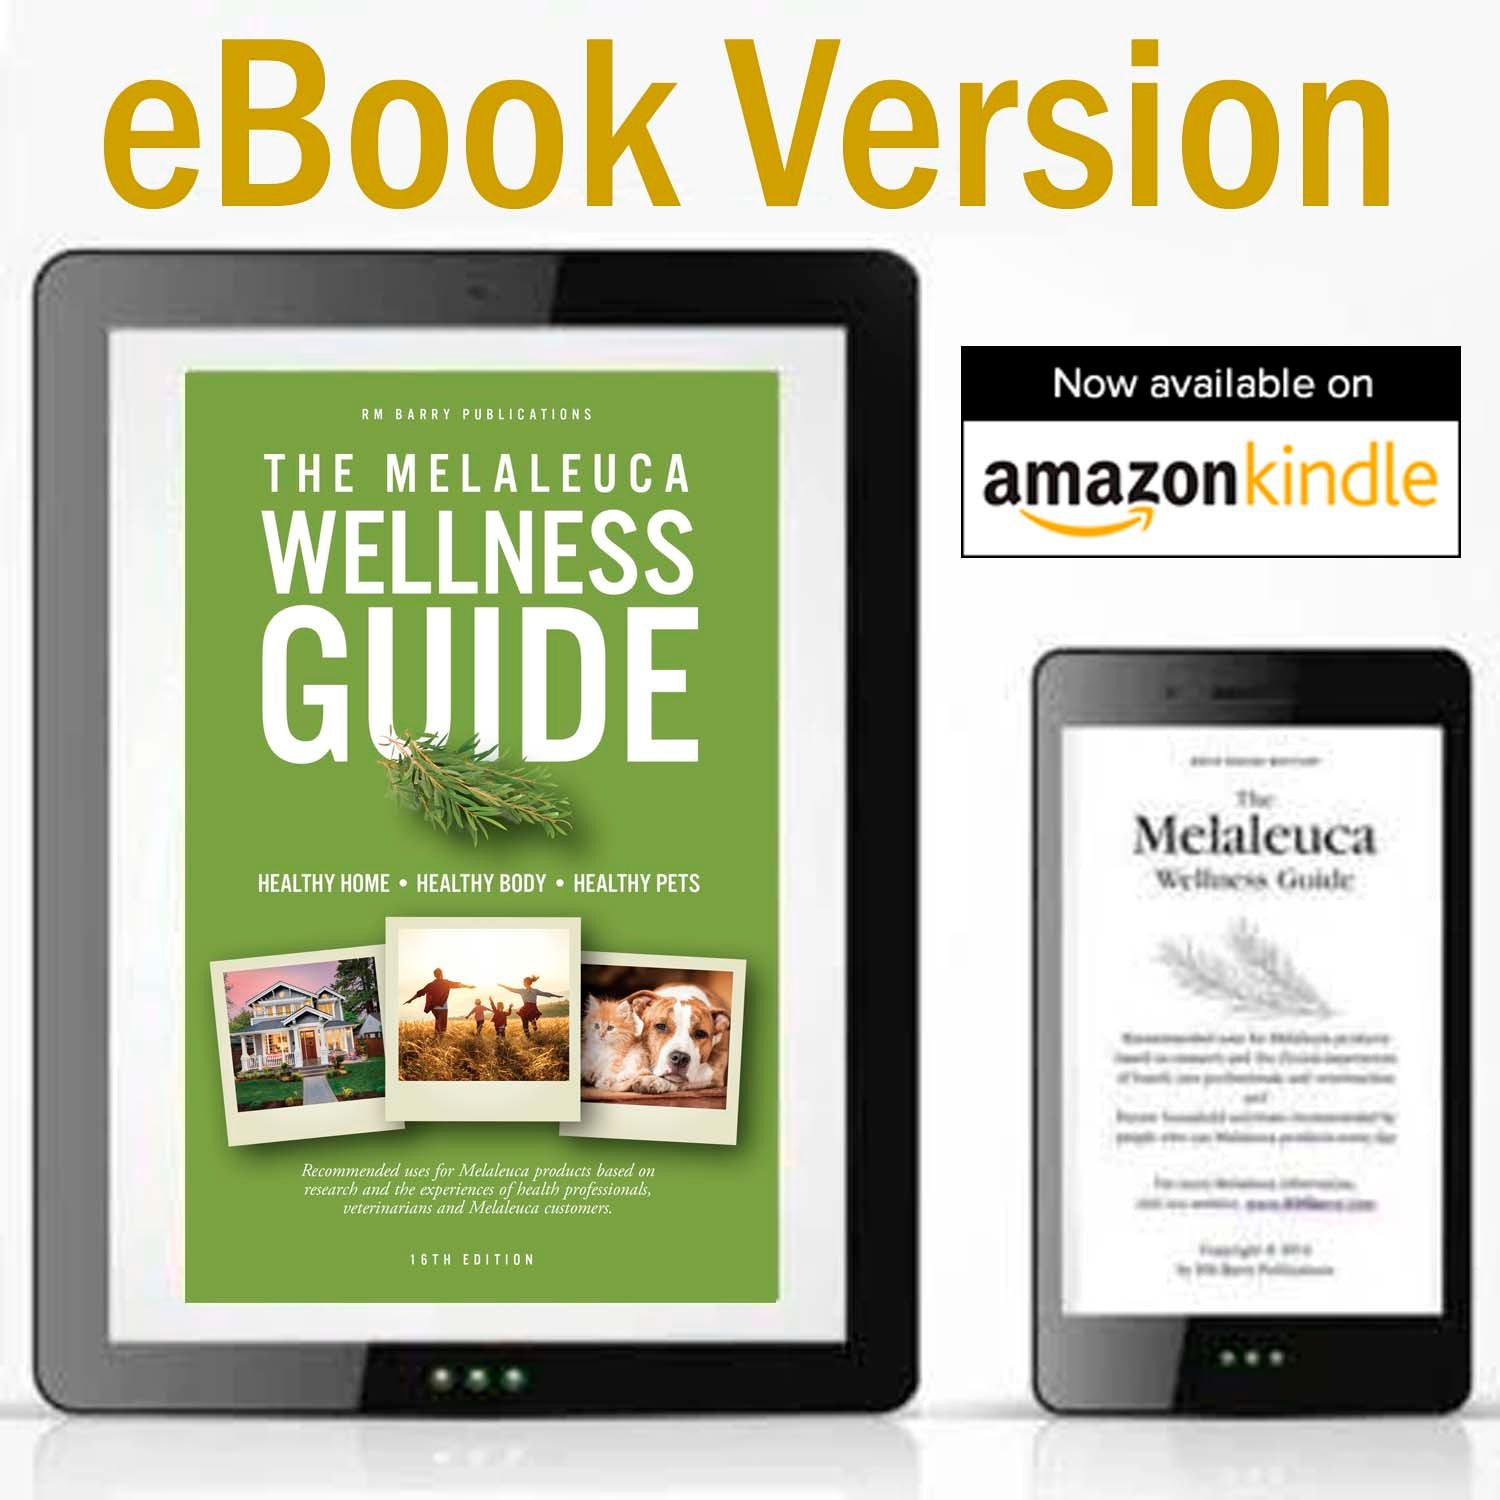 eBook:  The Melaleuca Wellness Guide